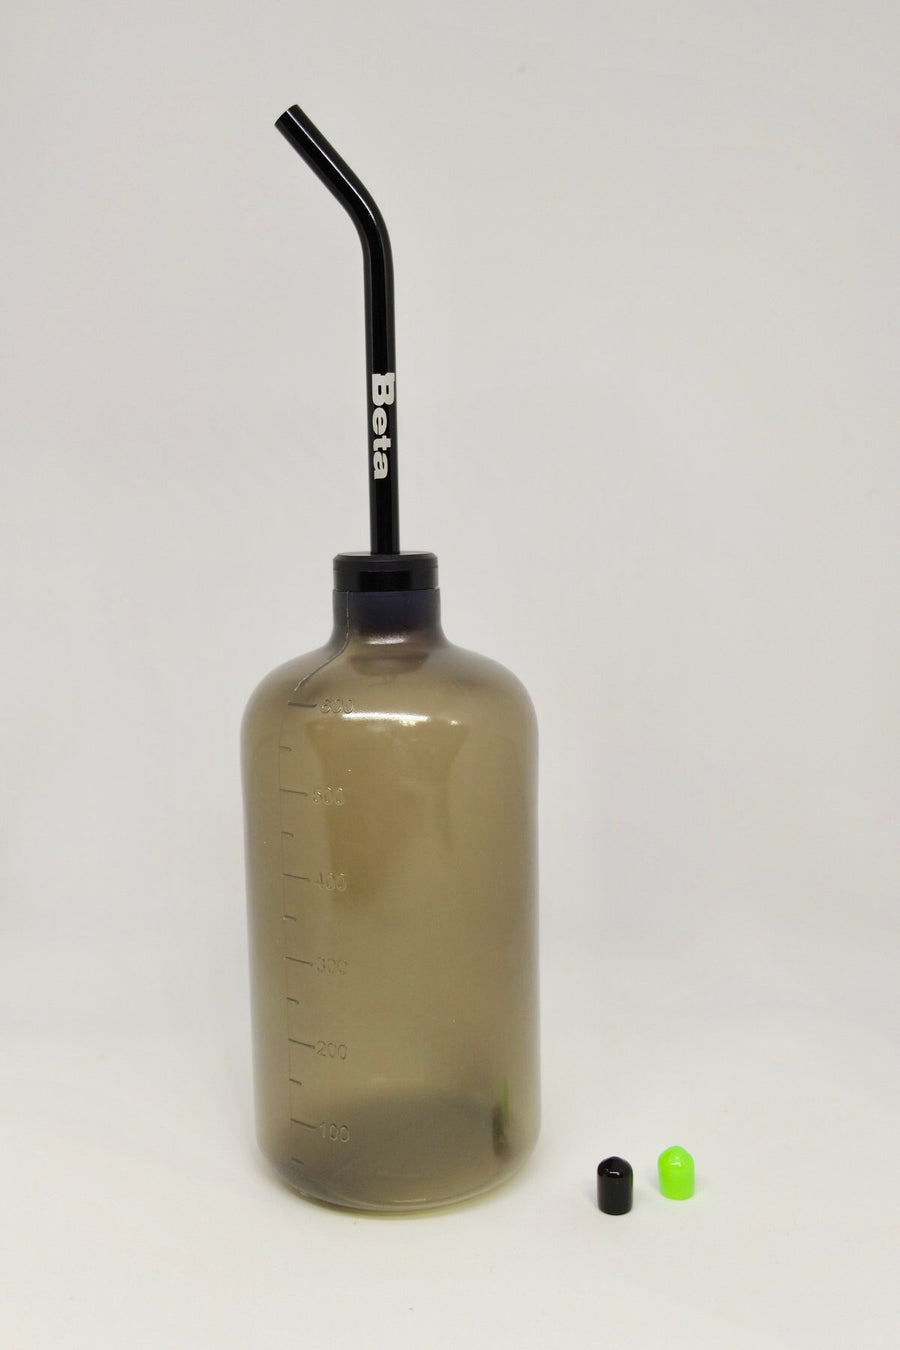 BE4600 BETA Soft Fuel Bottle